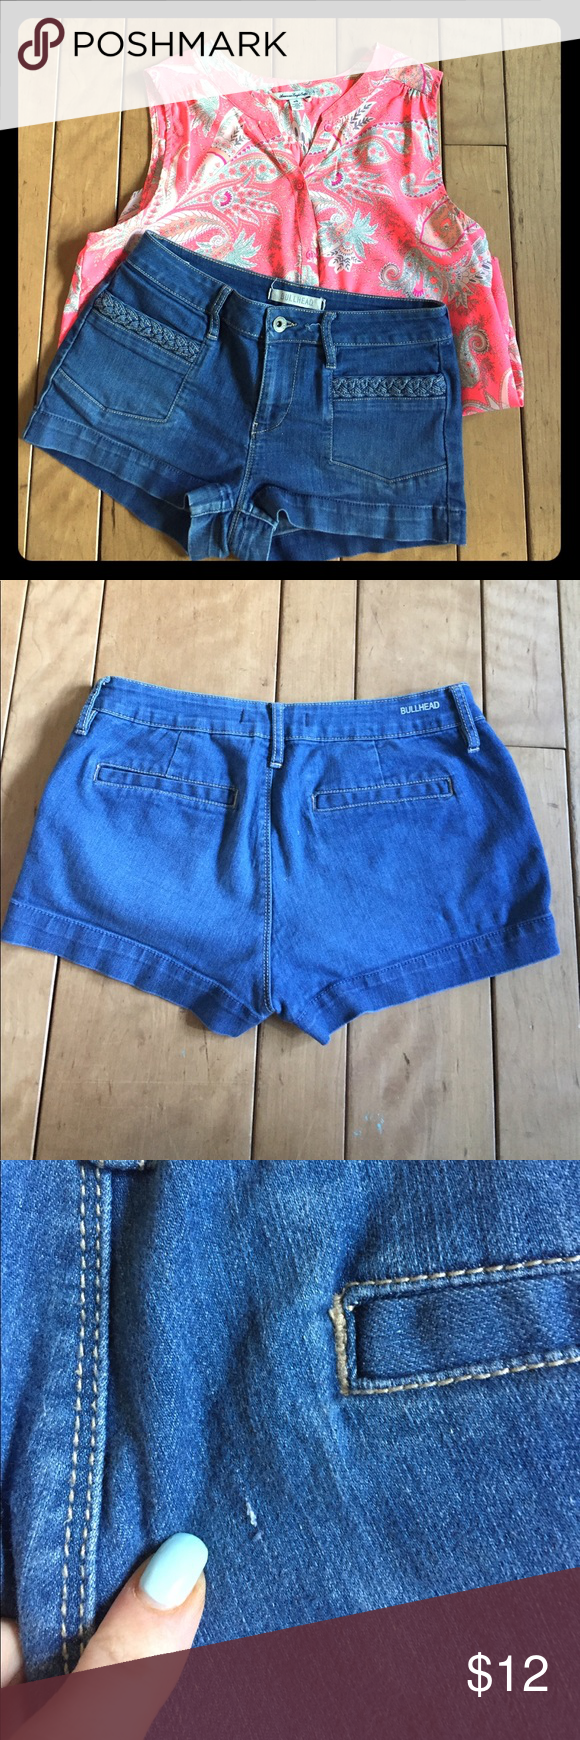 Bullhead Pacsun denim short Bullhead denim shorts with braided pocket. Tiny snag on the back in picture 3, it is not a hole! Comment below or send me an offer! ❤️ Bullhead Shorts Jean Shorts